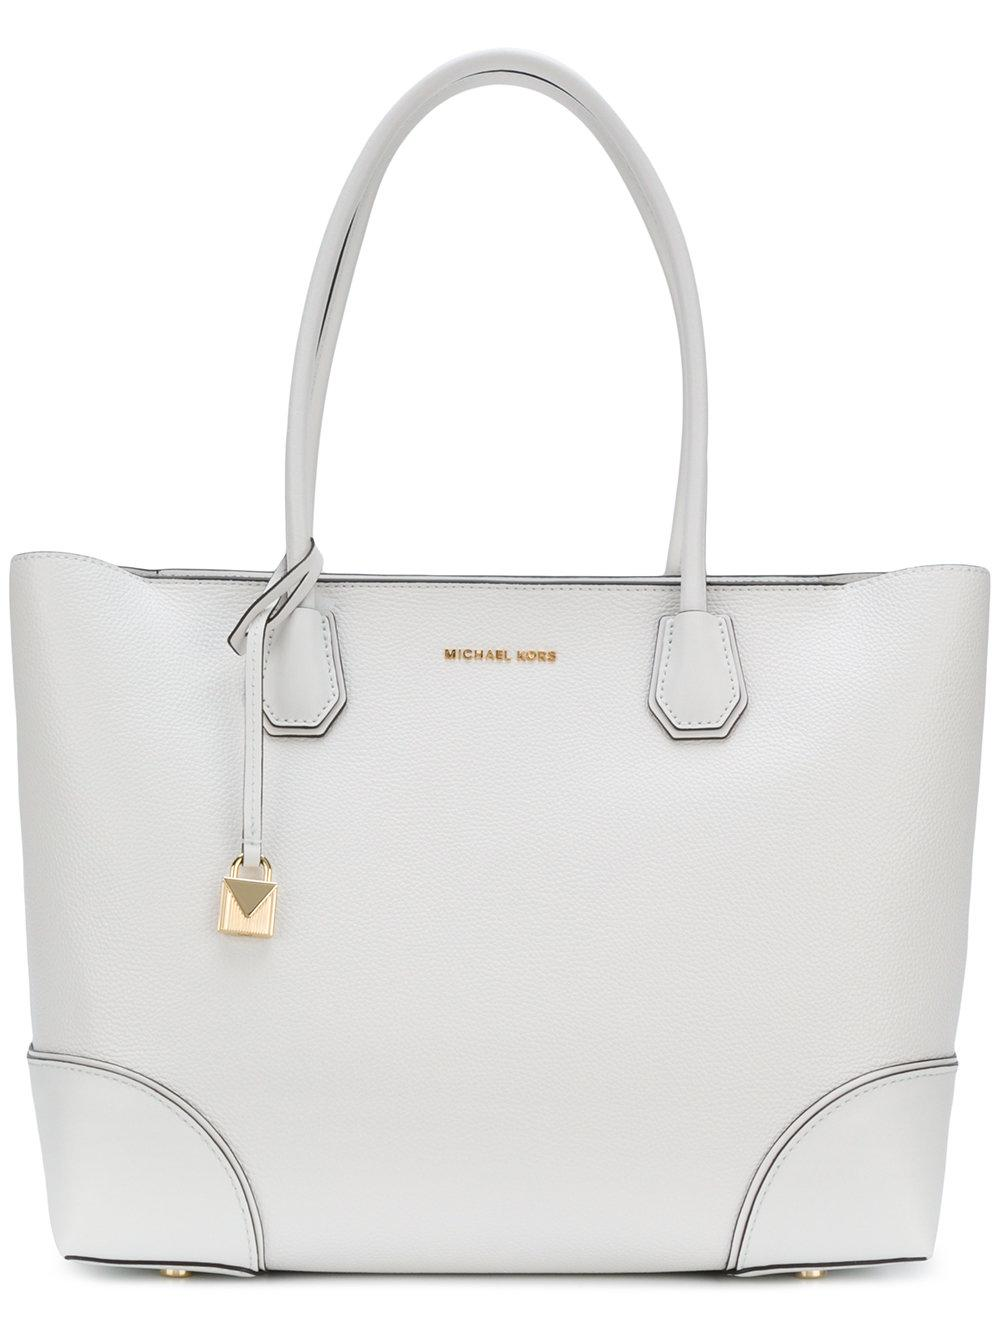 Michael Michael Kors Mercer Gallery Medium Leather Tote Bag In White